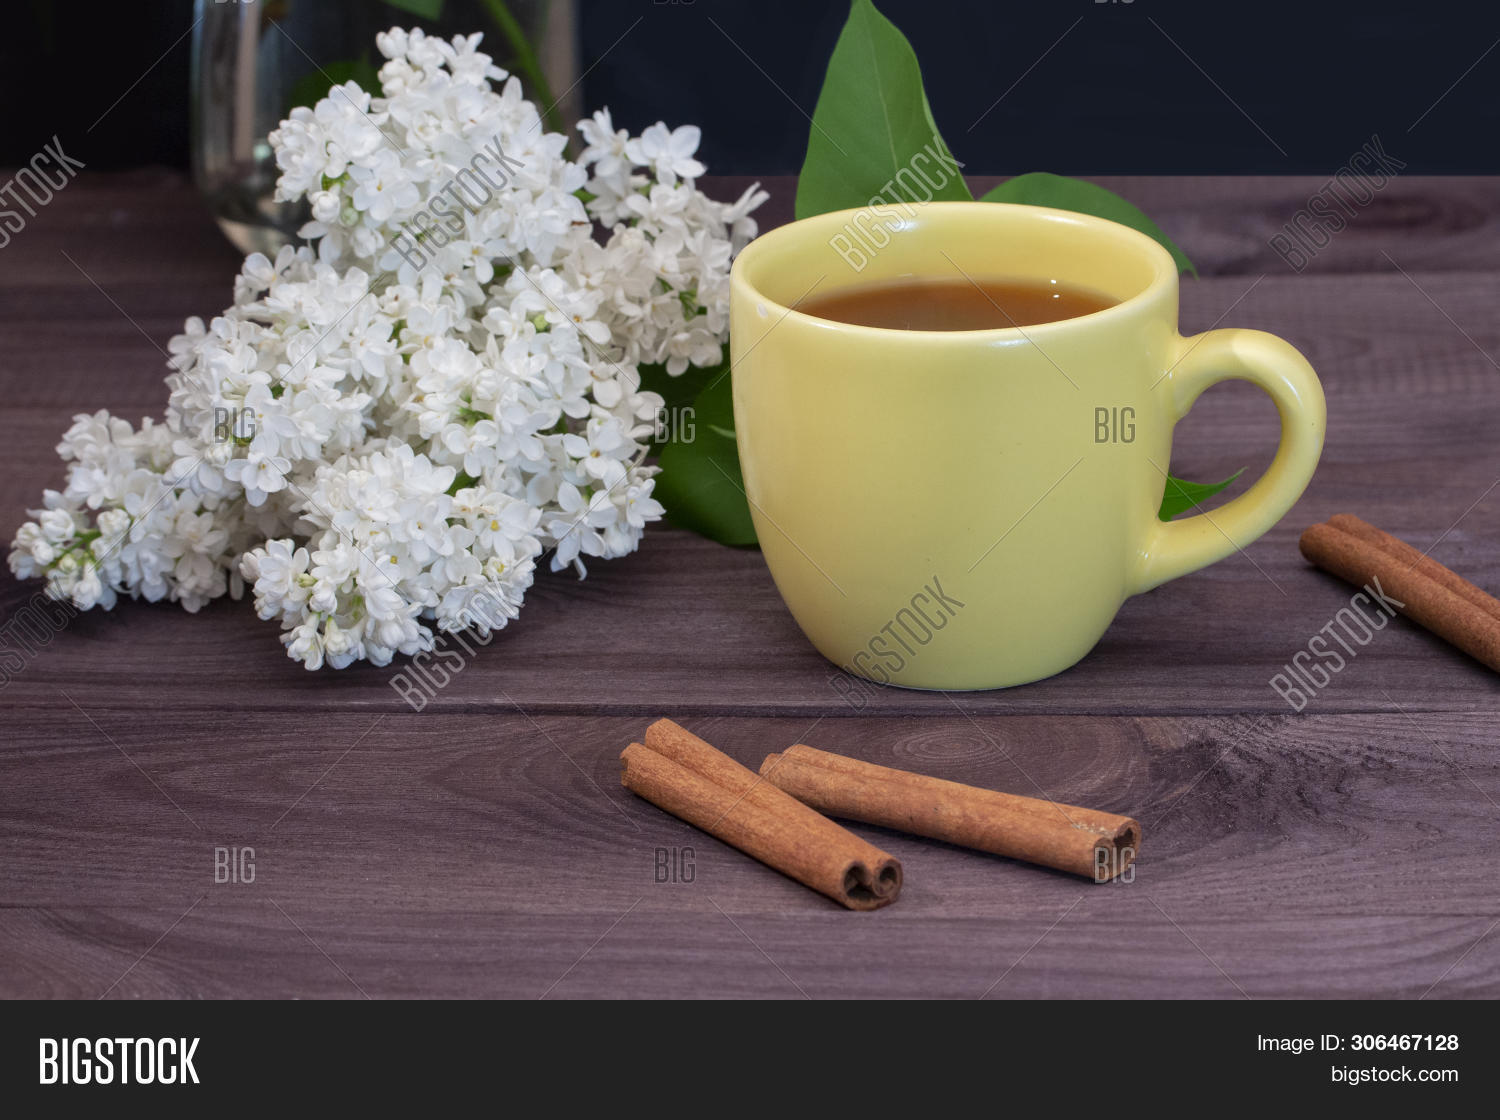 baked,branch,breakfast,brown,chinese,cinnamon,cup,dark,decorated,delicious,dessert,drink,eating,flowers,food,fresh,home,lilac,nobody,party,pleasant,service,spring,sticks,sweet,table,tea,white,wooden,yellow